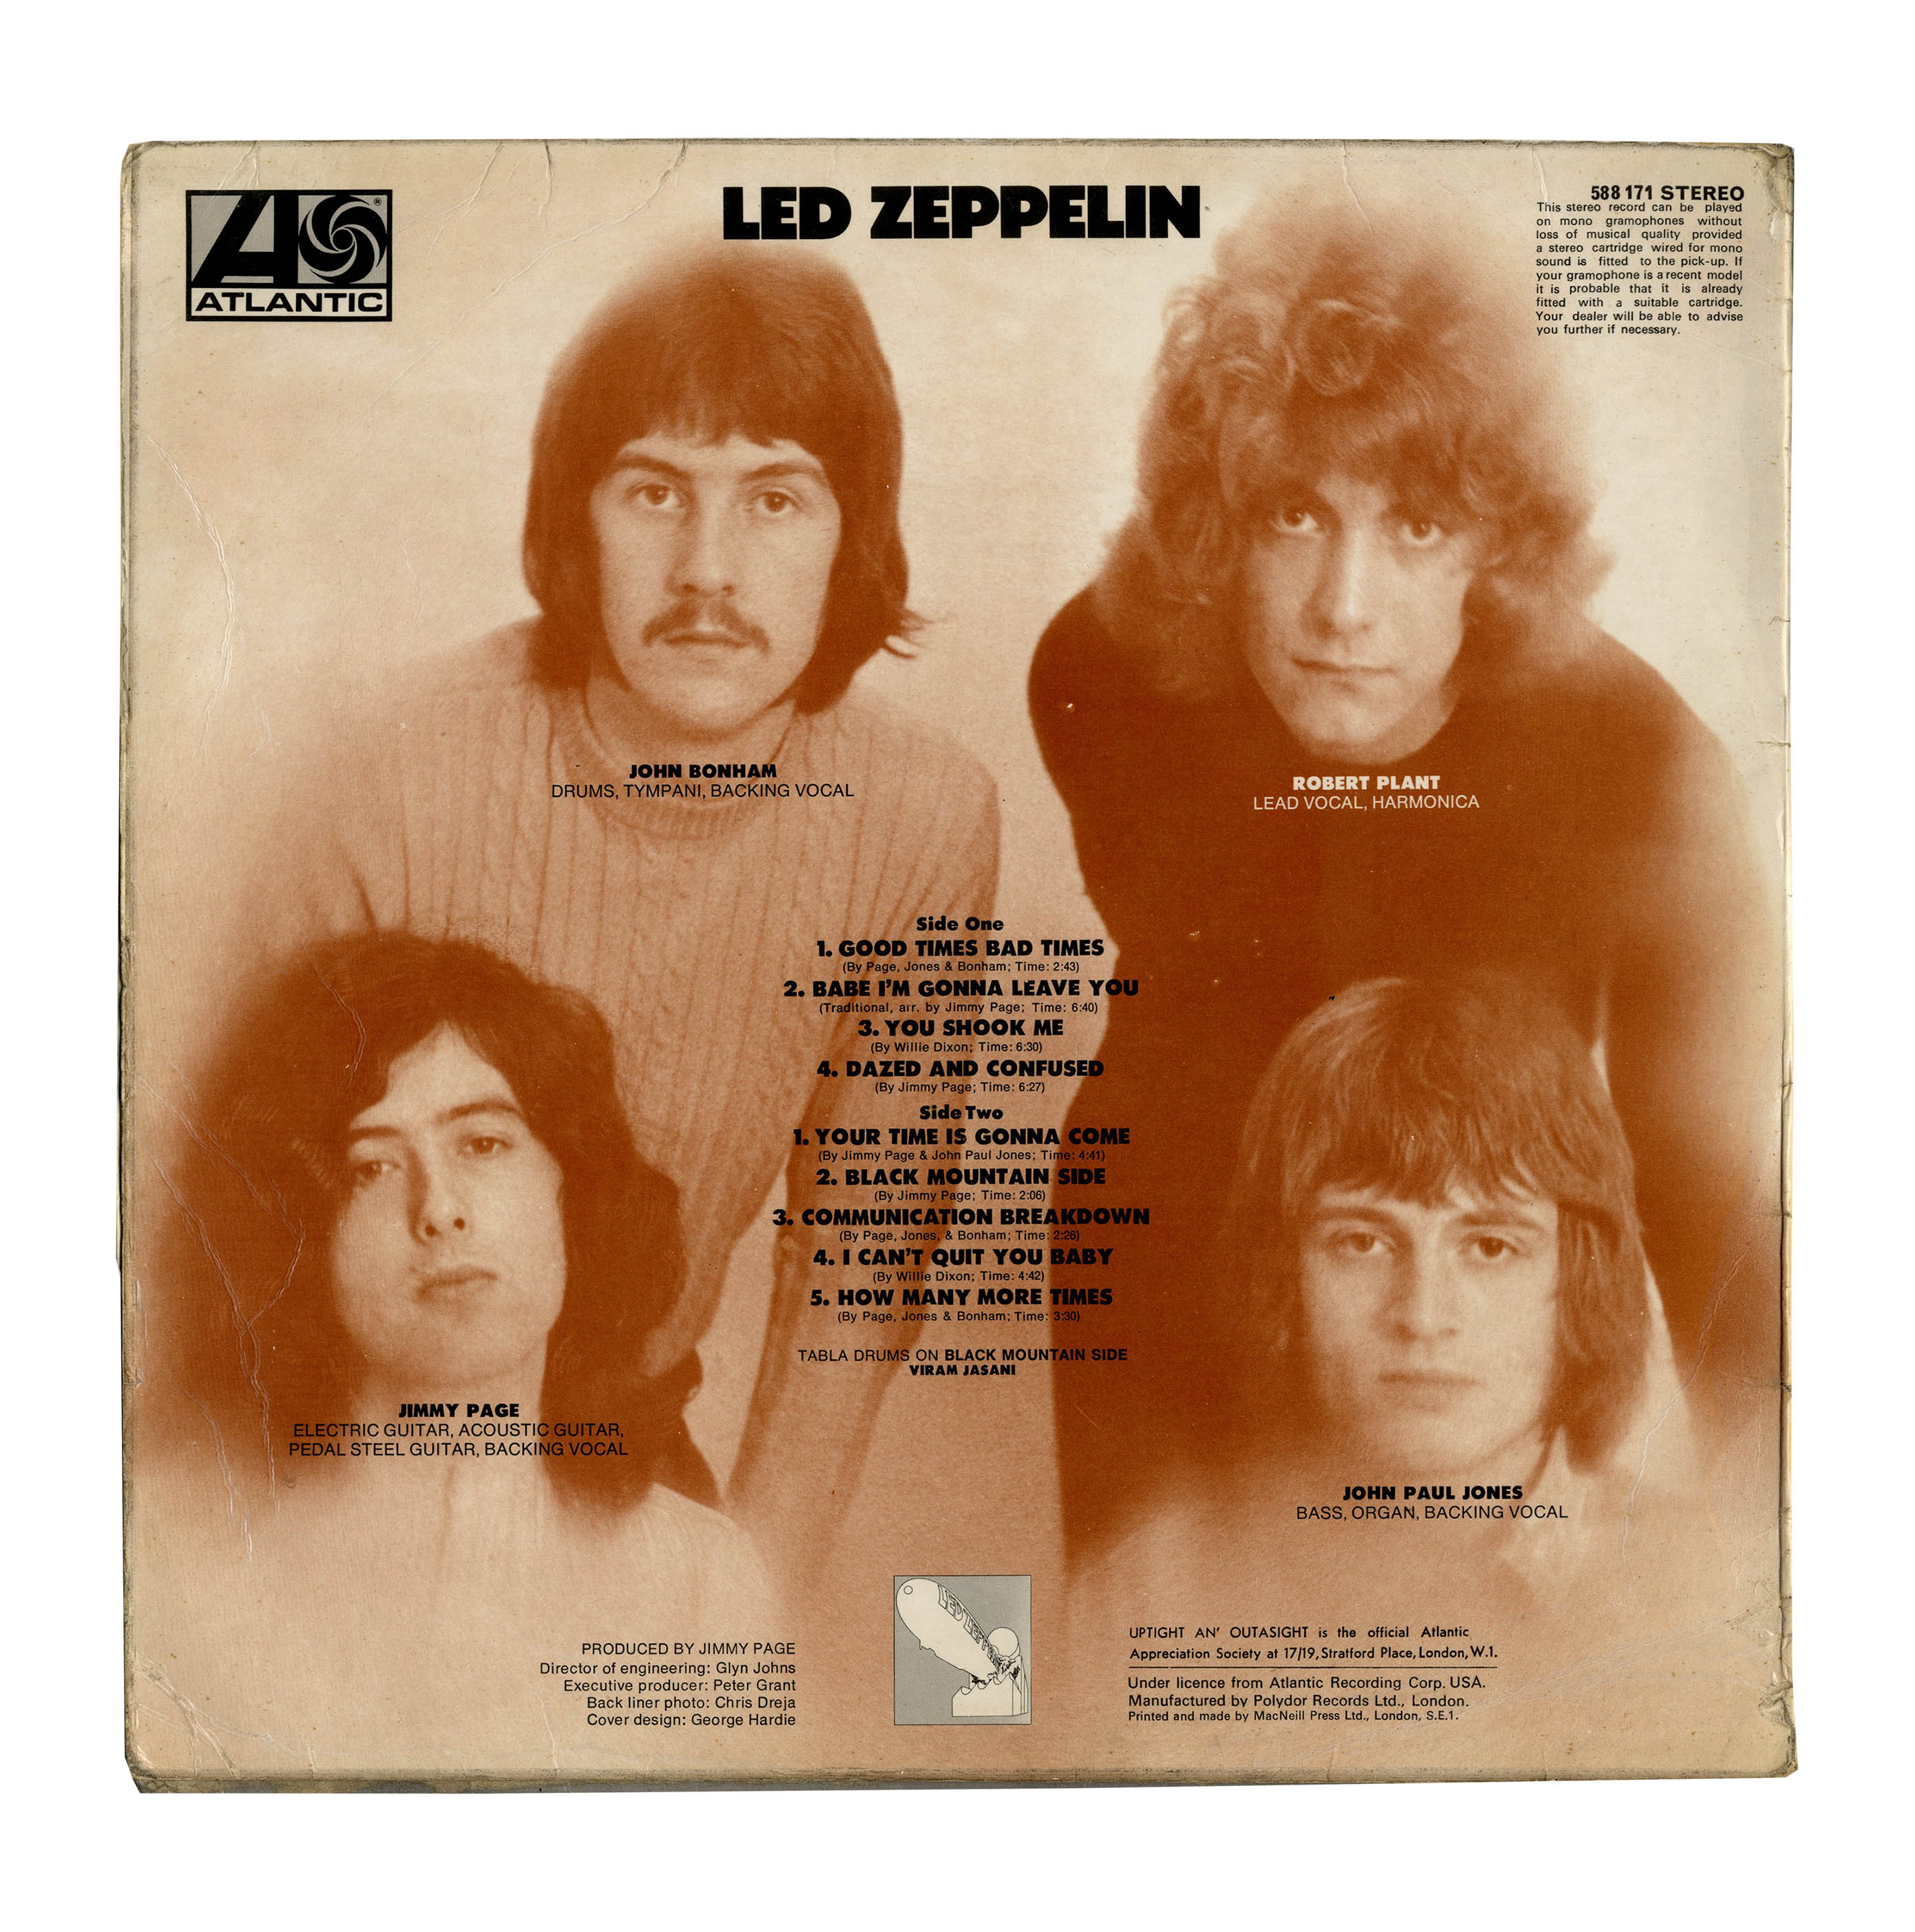 Led Zeppelin: The First Album